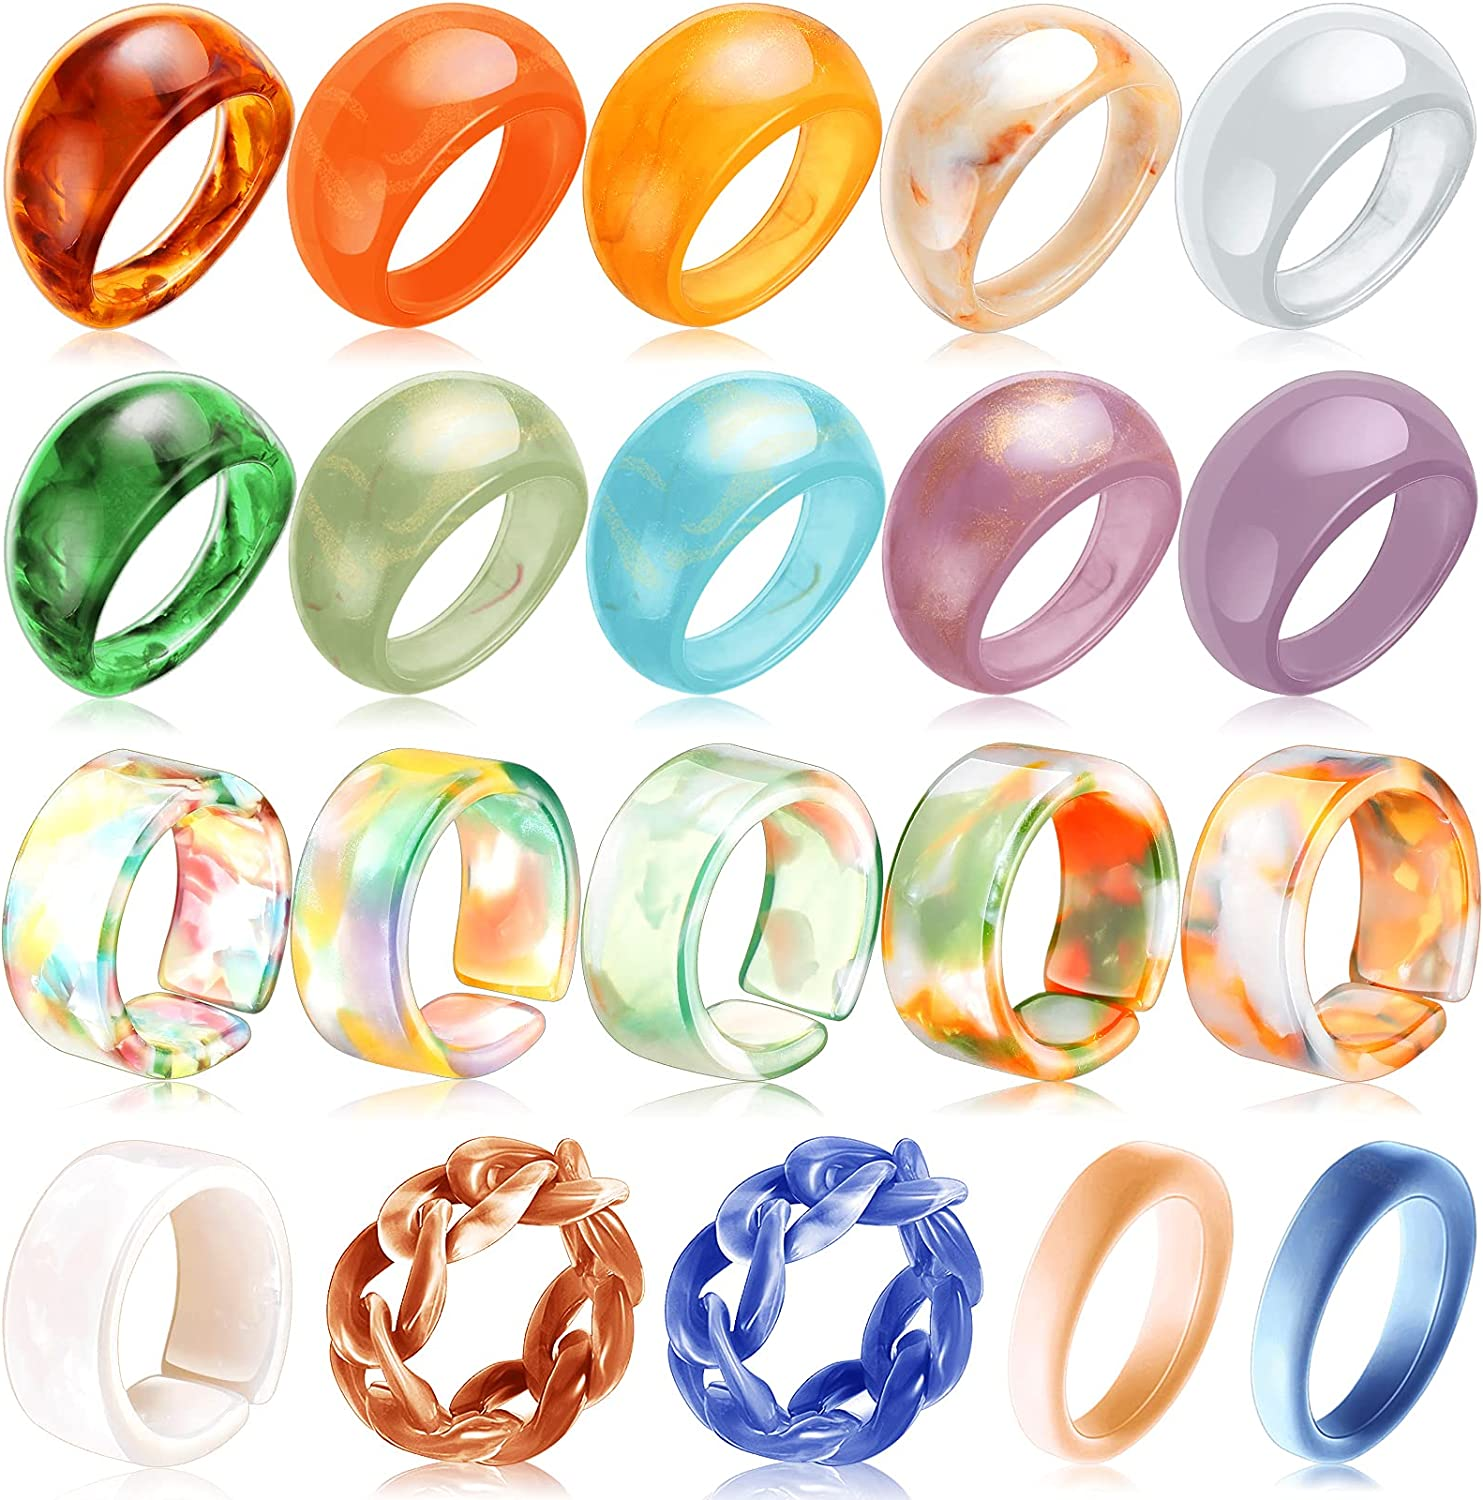 20 Pieces Colorful Resin Rings Vintage Resin Acrylic Rings Resin Statement Ring Wide Thick Dome Knuckle Finger Stackable Joint Ring Transparent Acrylic Ring Wedding Open Ring Jewelry for Girls Women